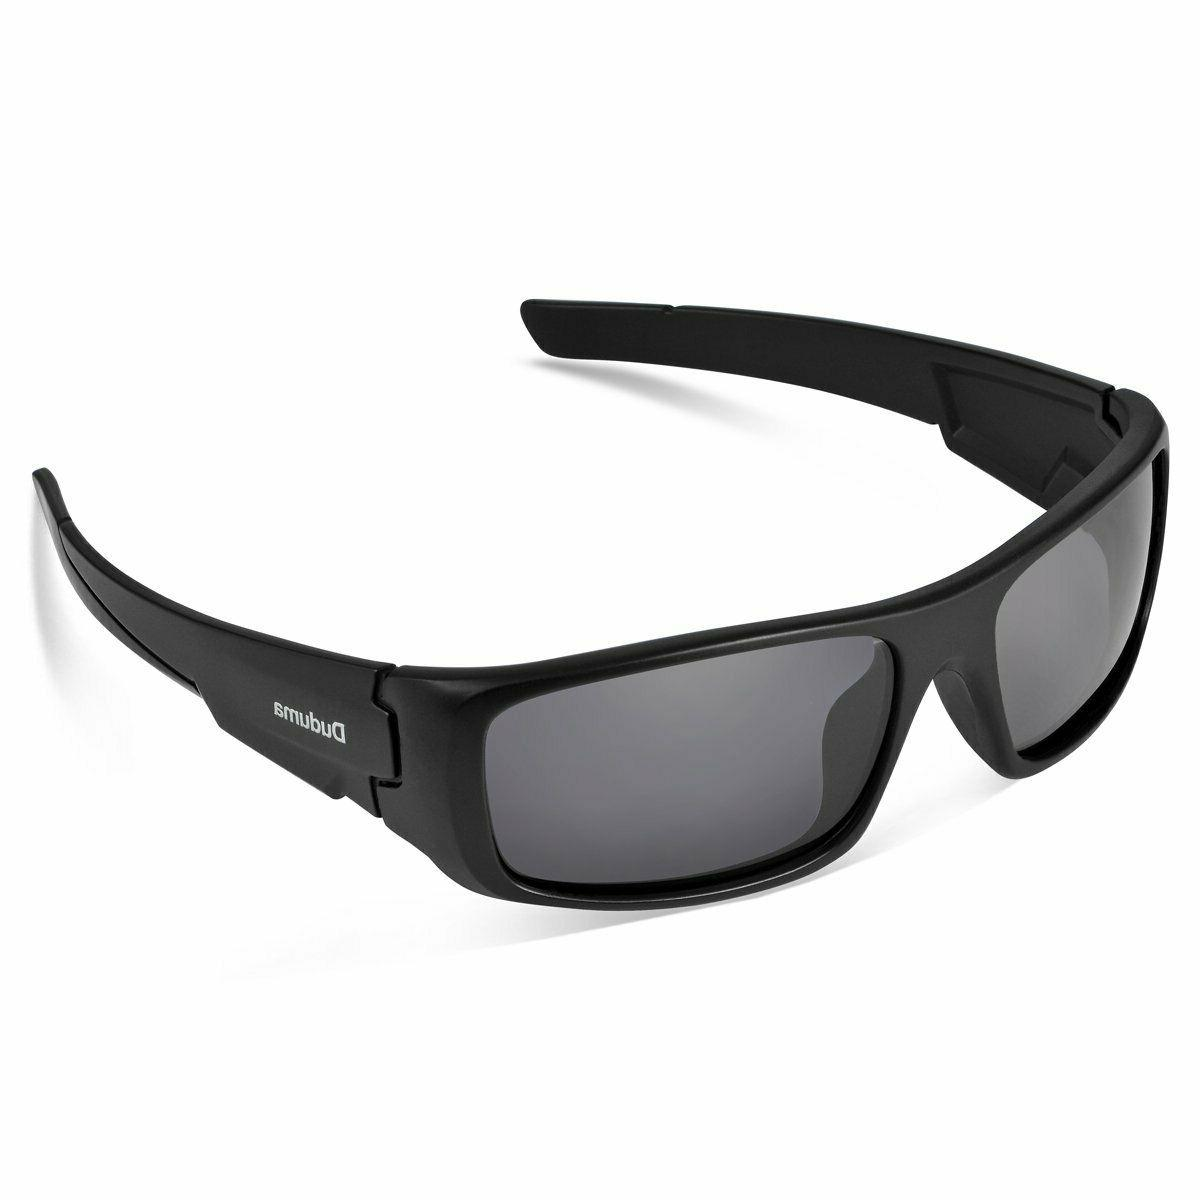 polarized sports sunglasses for cycling fishing drivinghikin